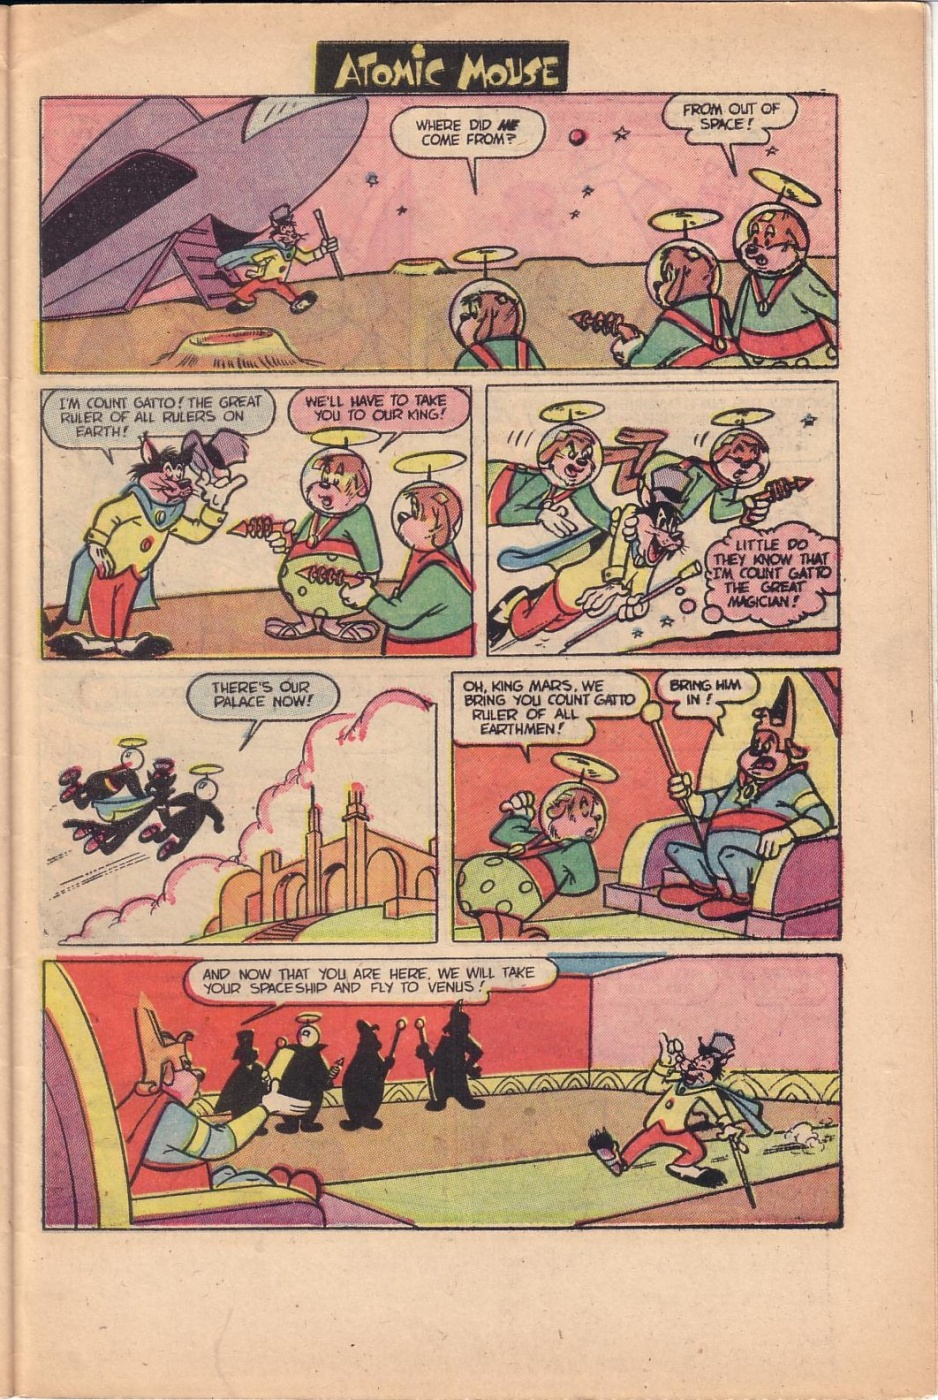 Atomic Mouse Comics - Funny Comics (29)